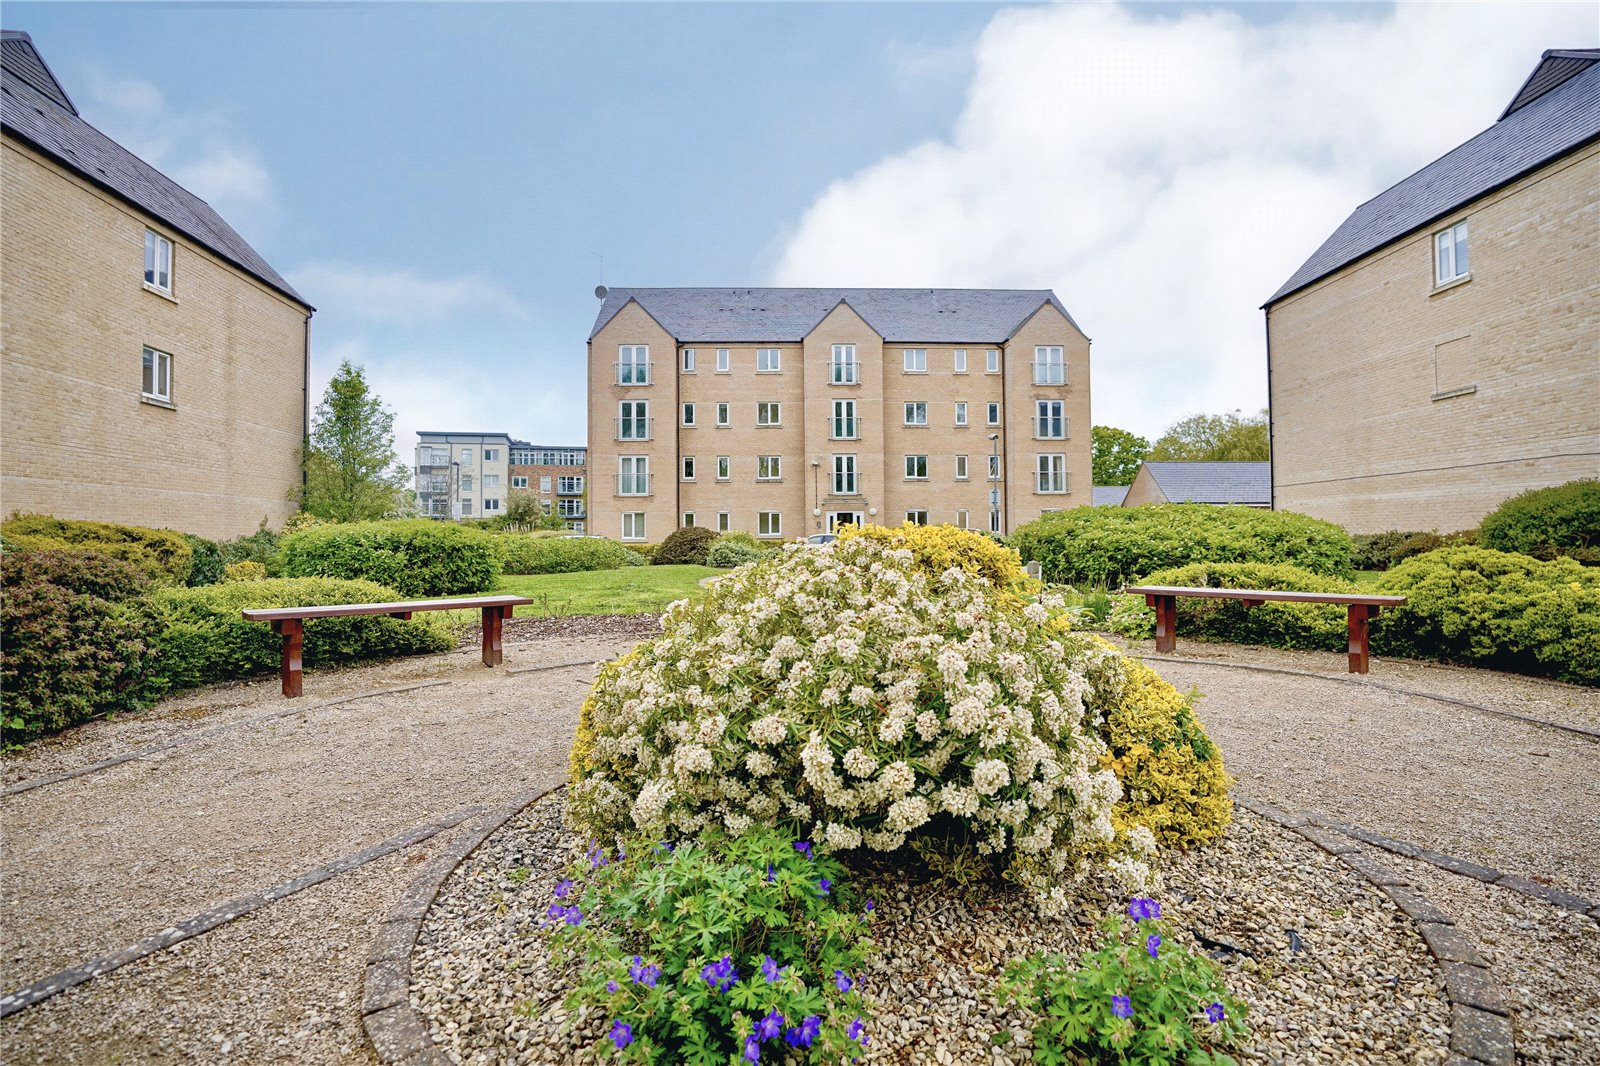 2 bed apartment for sale in Skipper Way, Little Paxton, PE19